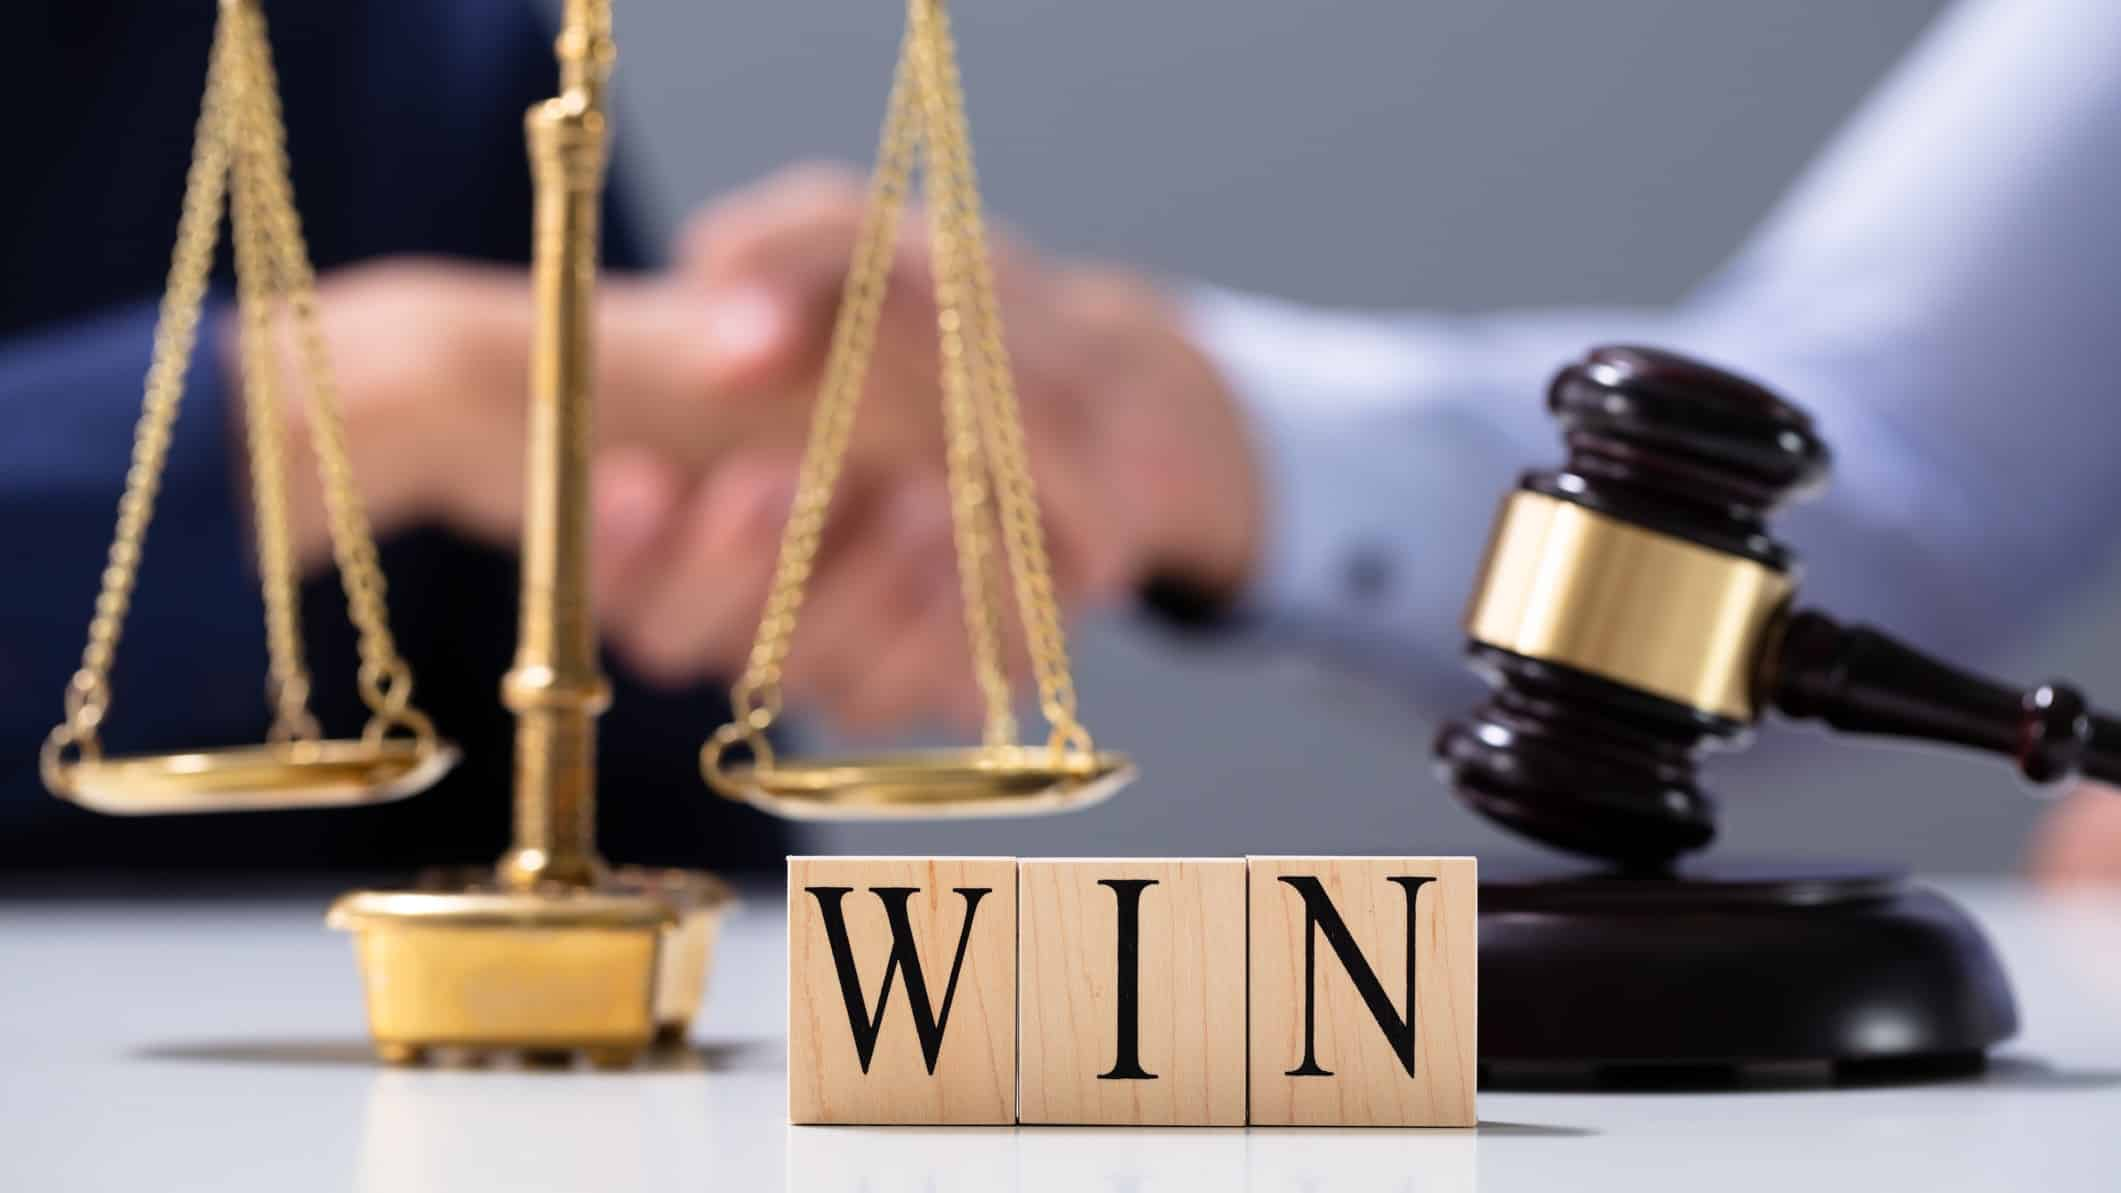 Woolworths win in court represented by scales, judges hammer and wooden blocks spelling the word win